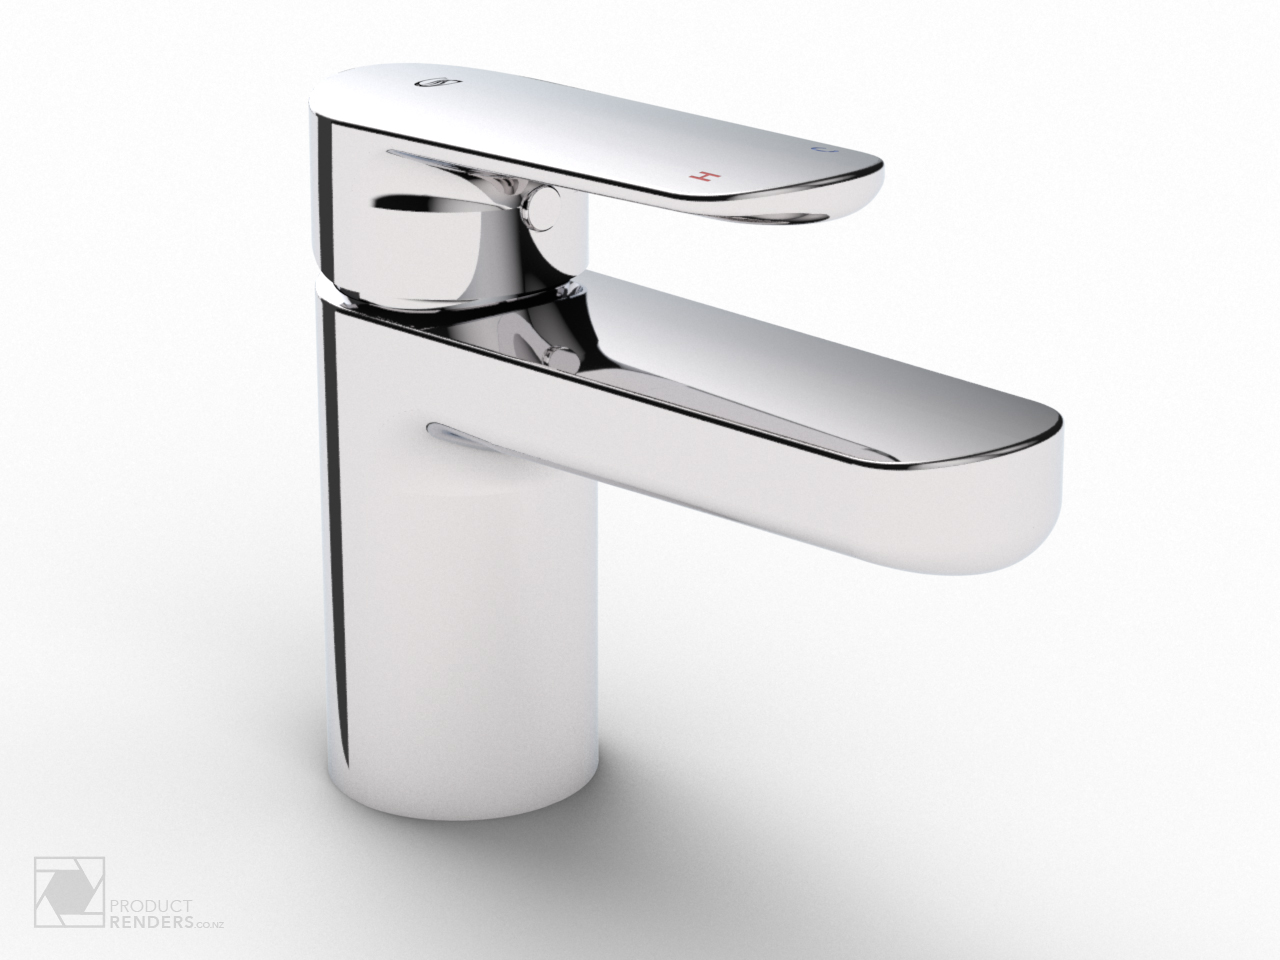 3D render of a chrome bathroom tap